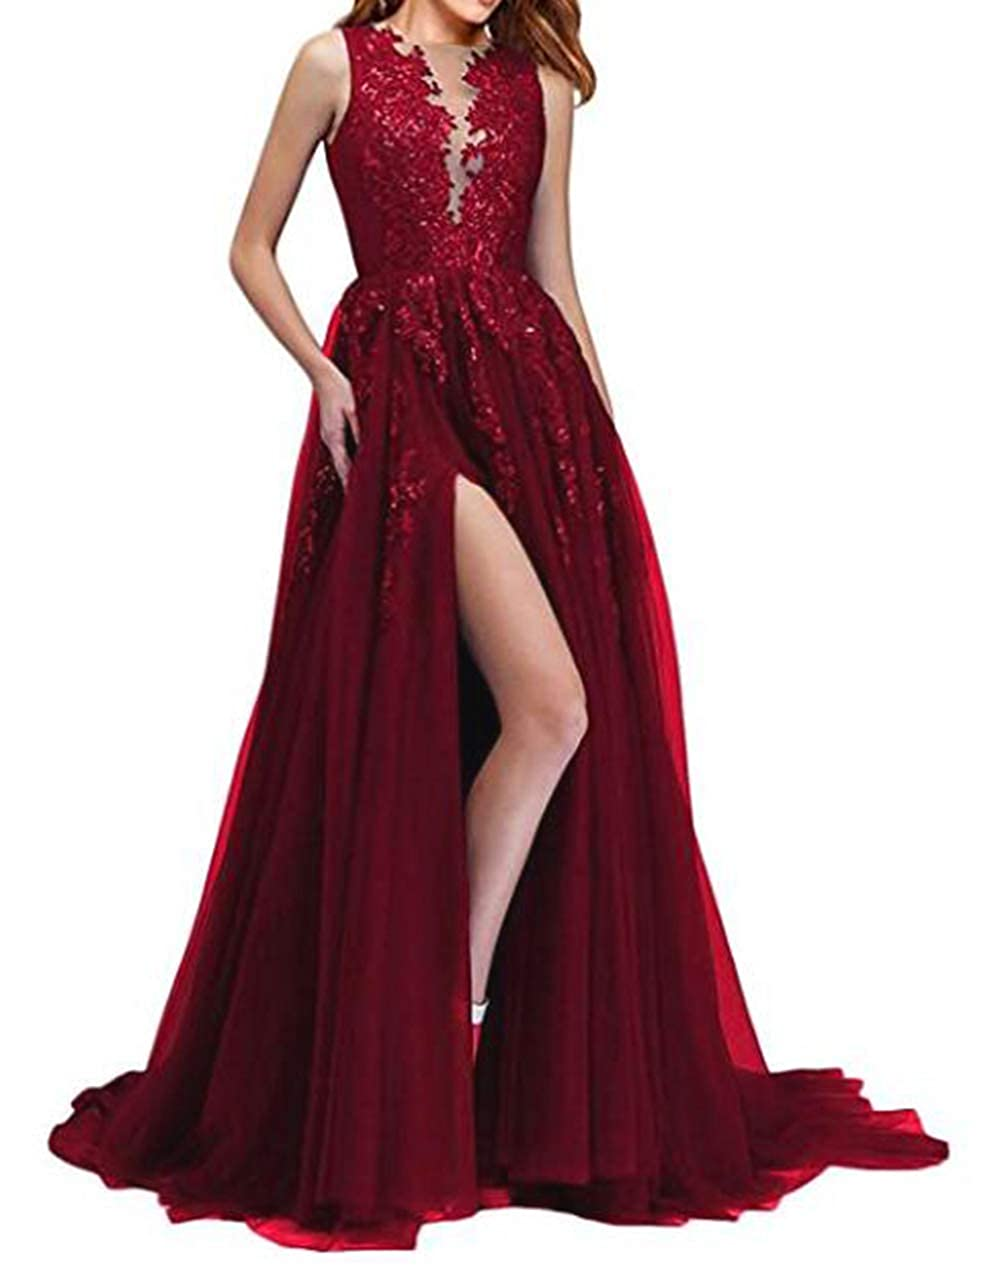 Burgundy alilith.Z Sexy Side Slit Prom Dresses 2019 Long Sequins Lace Appliques Party Gowns Formal Dresses for Women Evening Ball